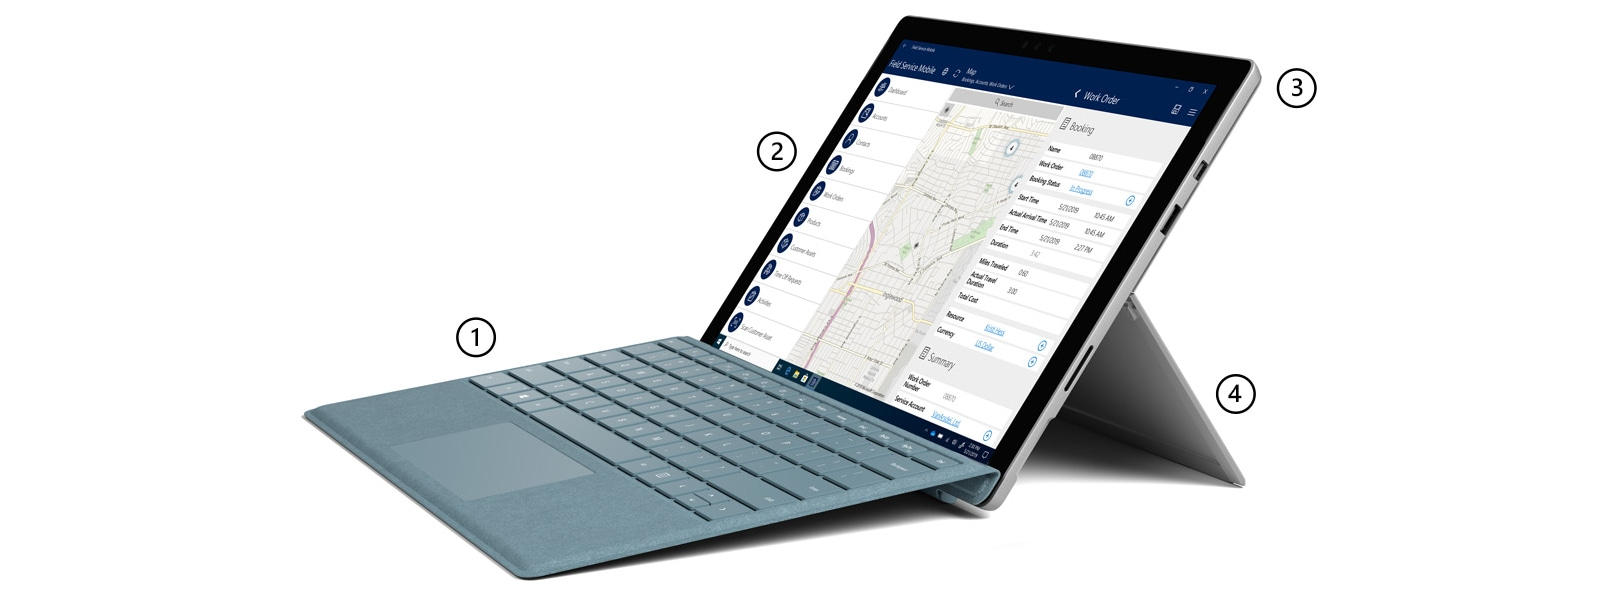 Surface Pro 5th Gen with LTE Advanced in laptop mode with Surface Pro Signature Type Cover in Ice Blue